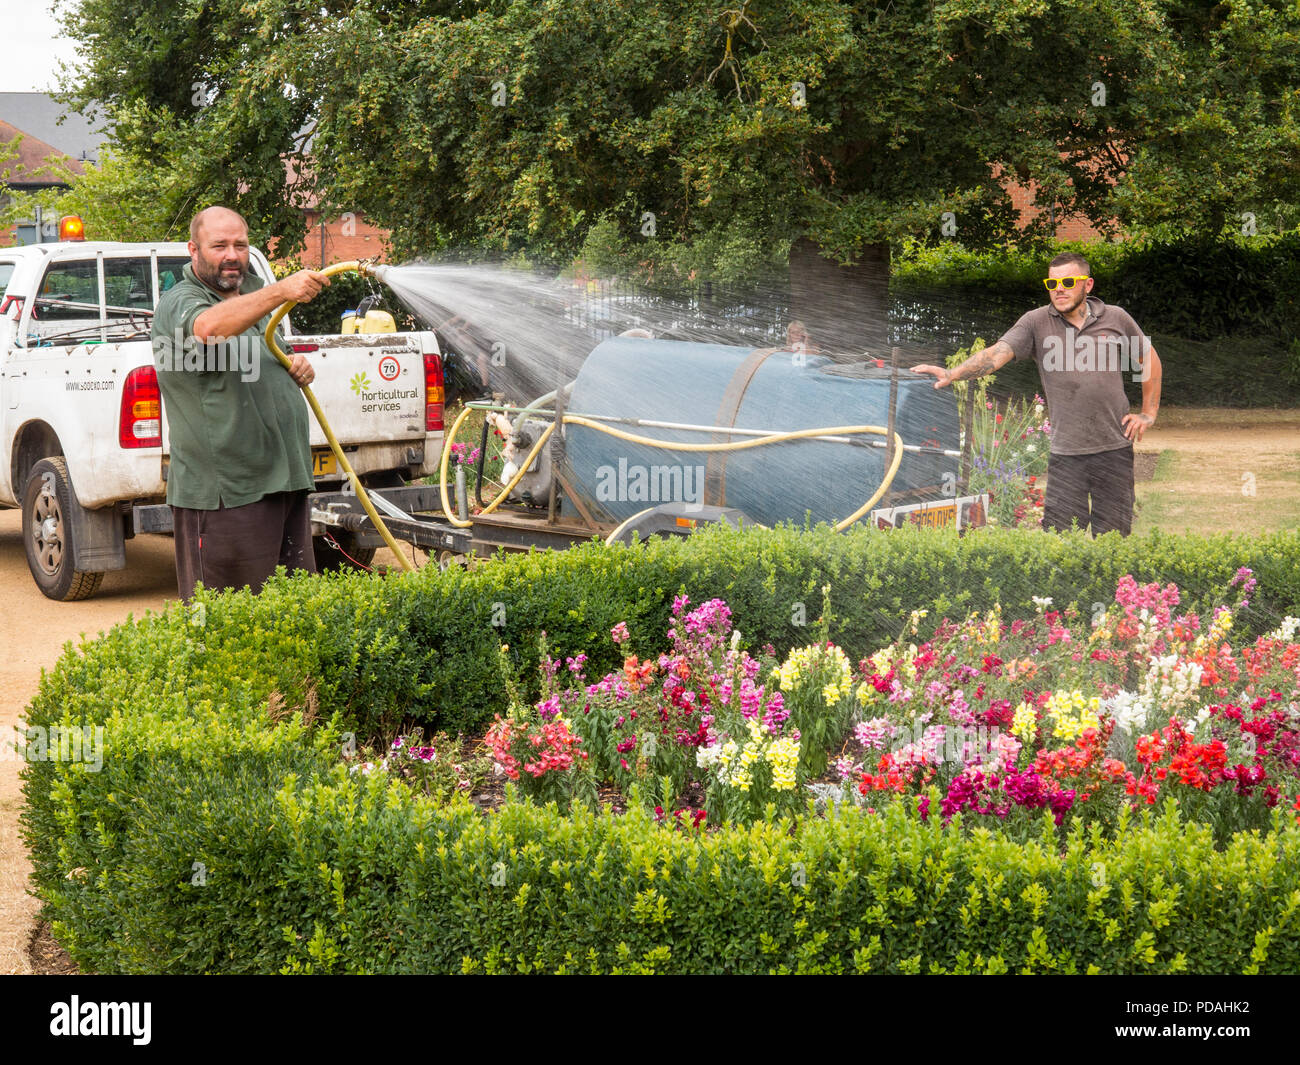 Council workmen gardener watering the the flower beds during the heatwave of summer  2018 in the Abbey Gardens Abingdon Oxfordshire England UK - Stock Image